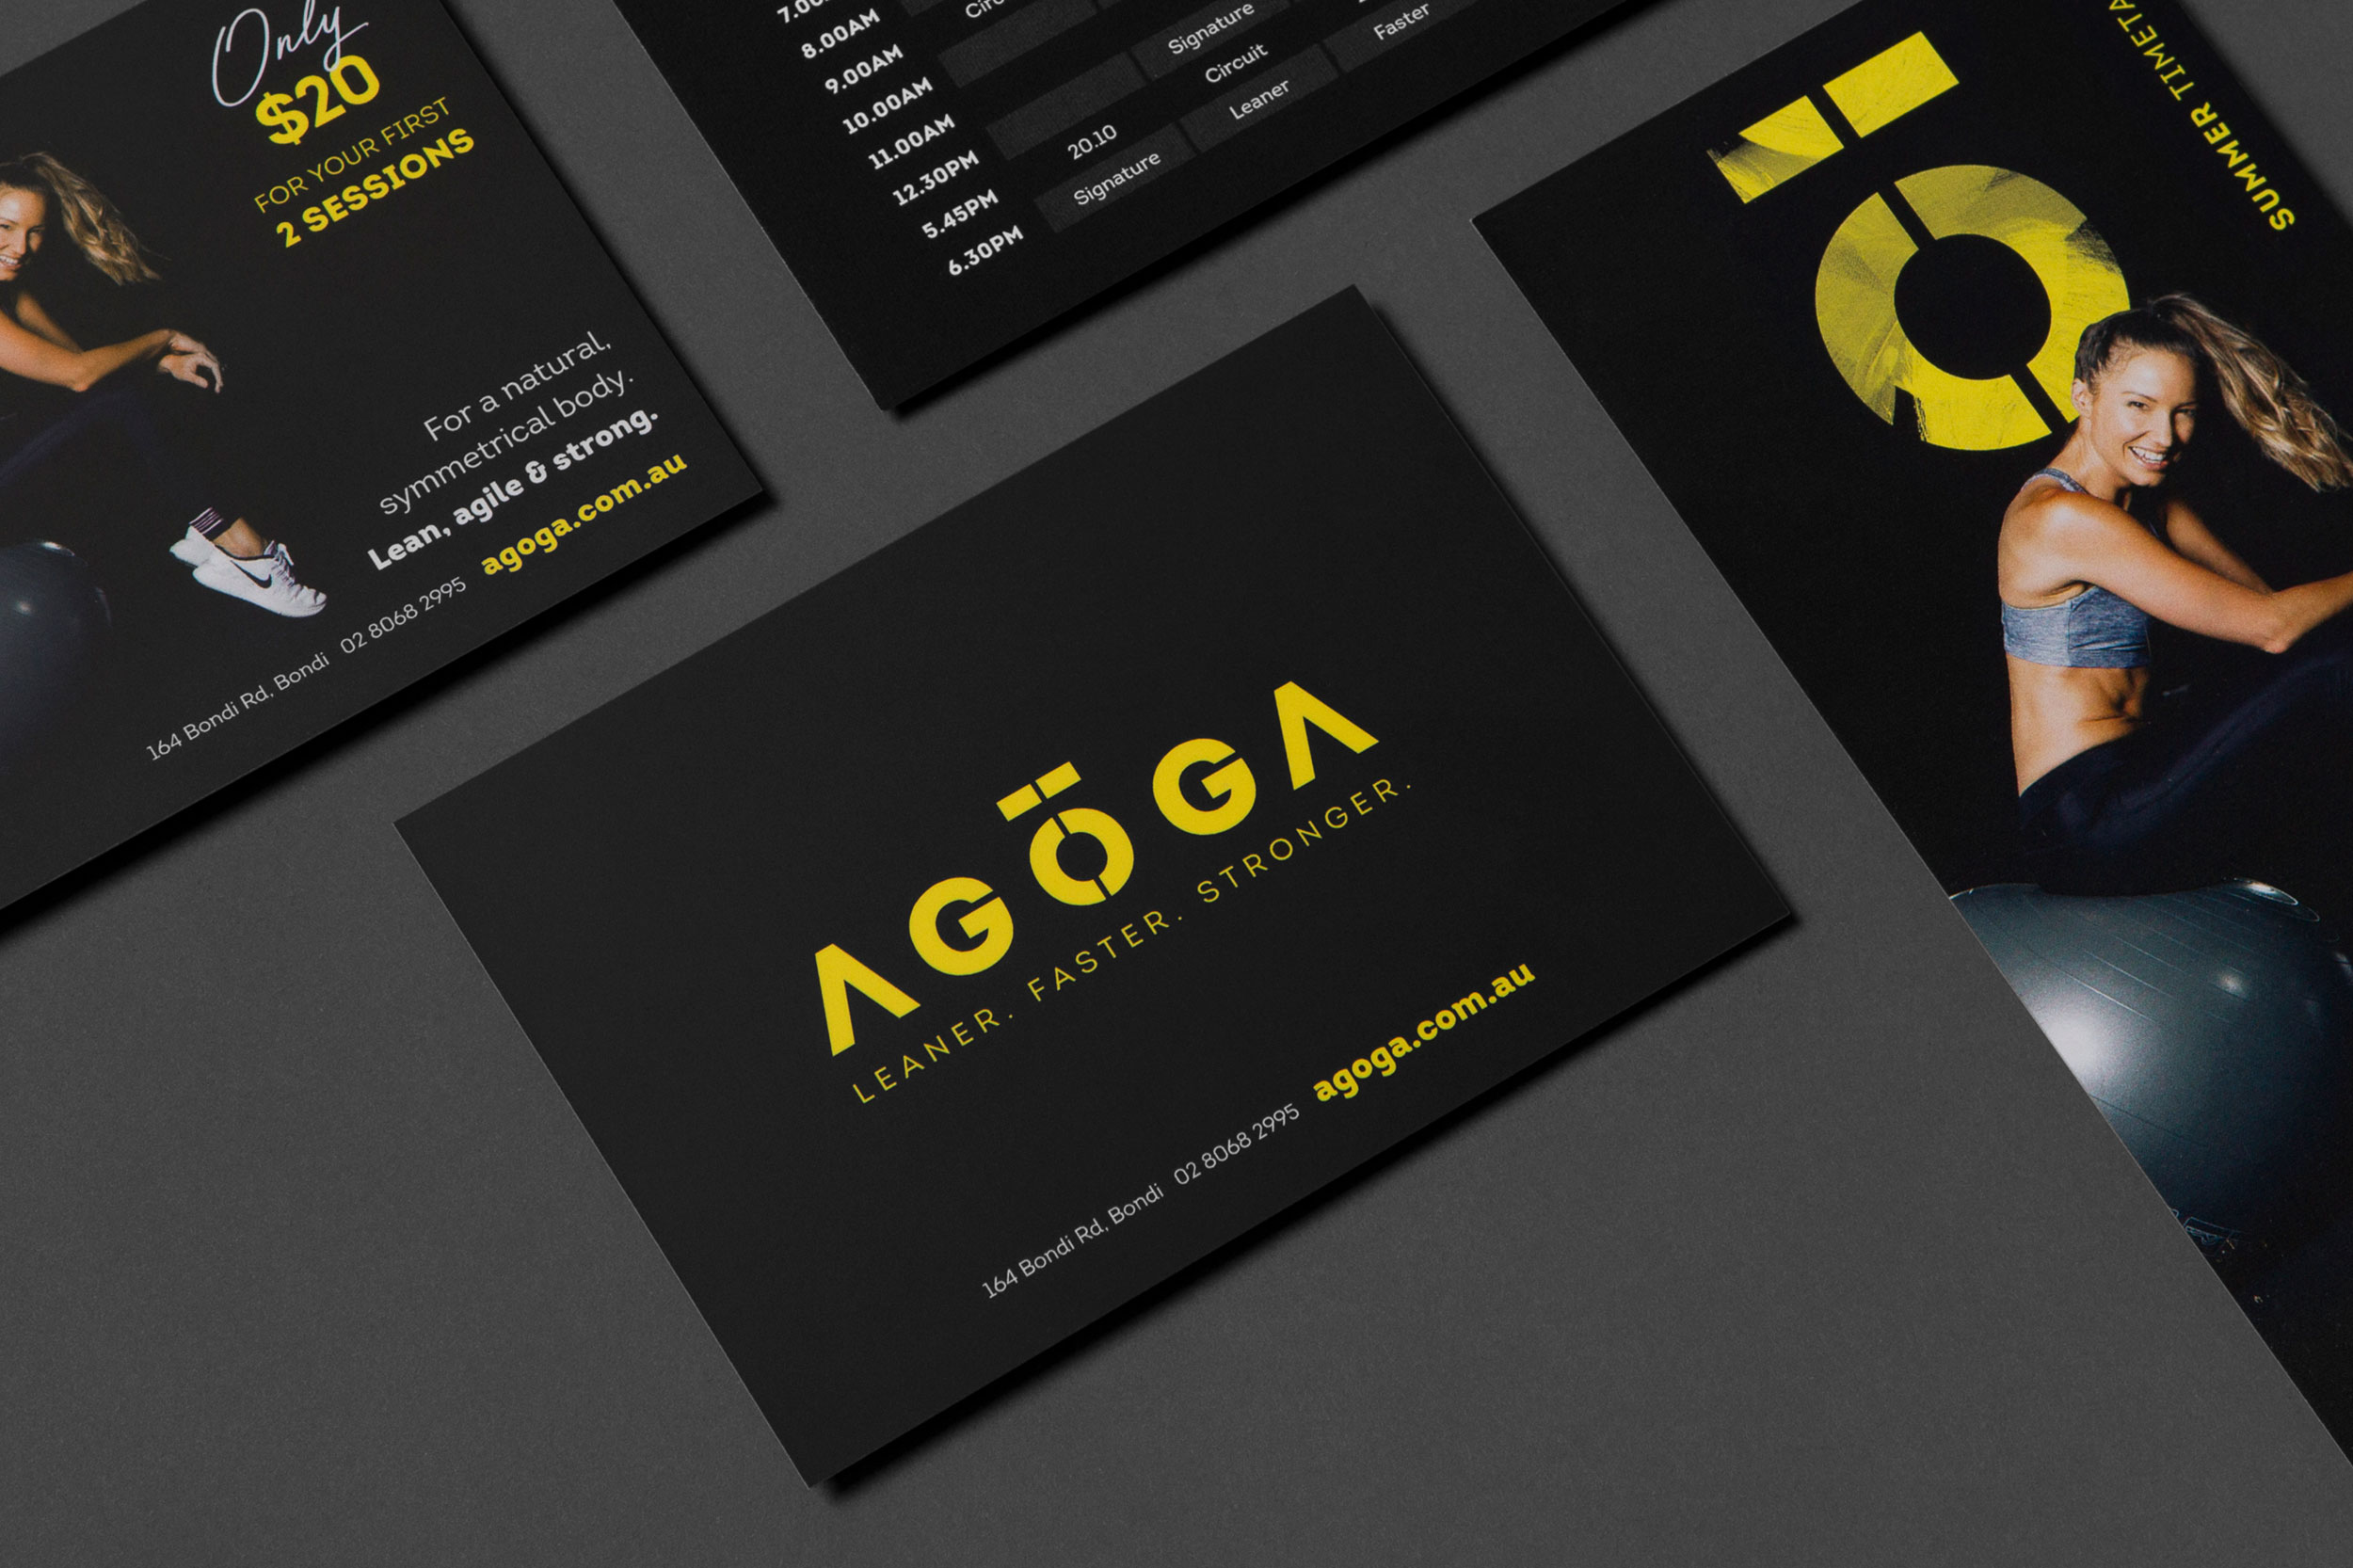 A close-up of a flyer designed for Agoga Bondi, featuring the brand logo on a black background.